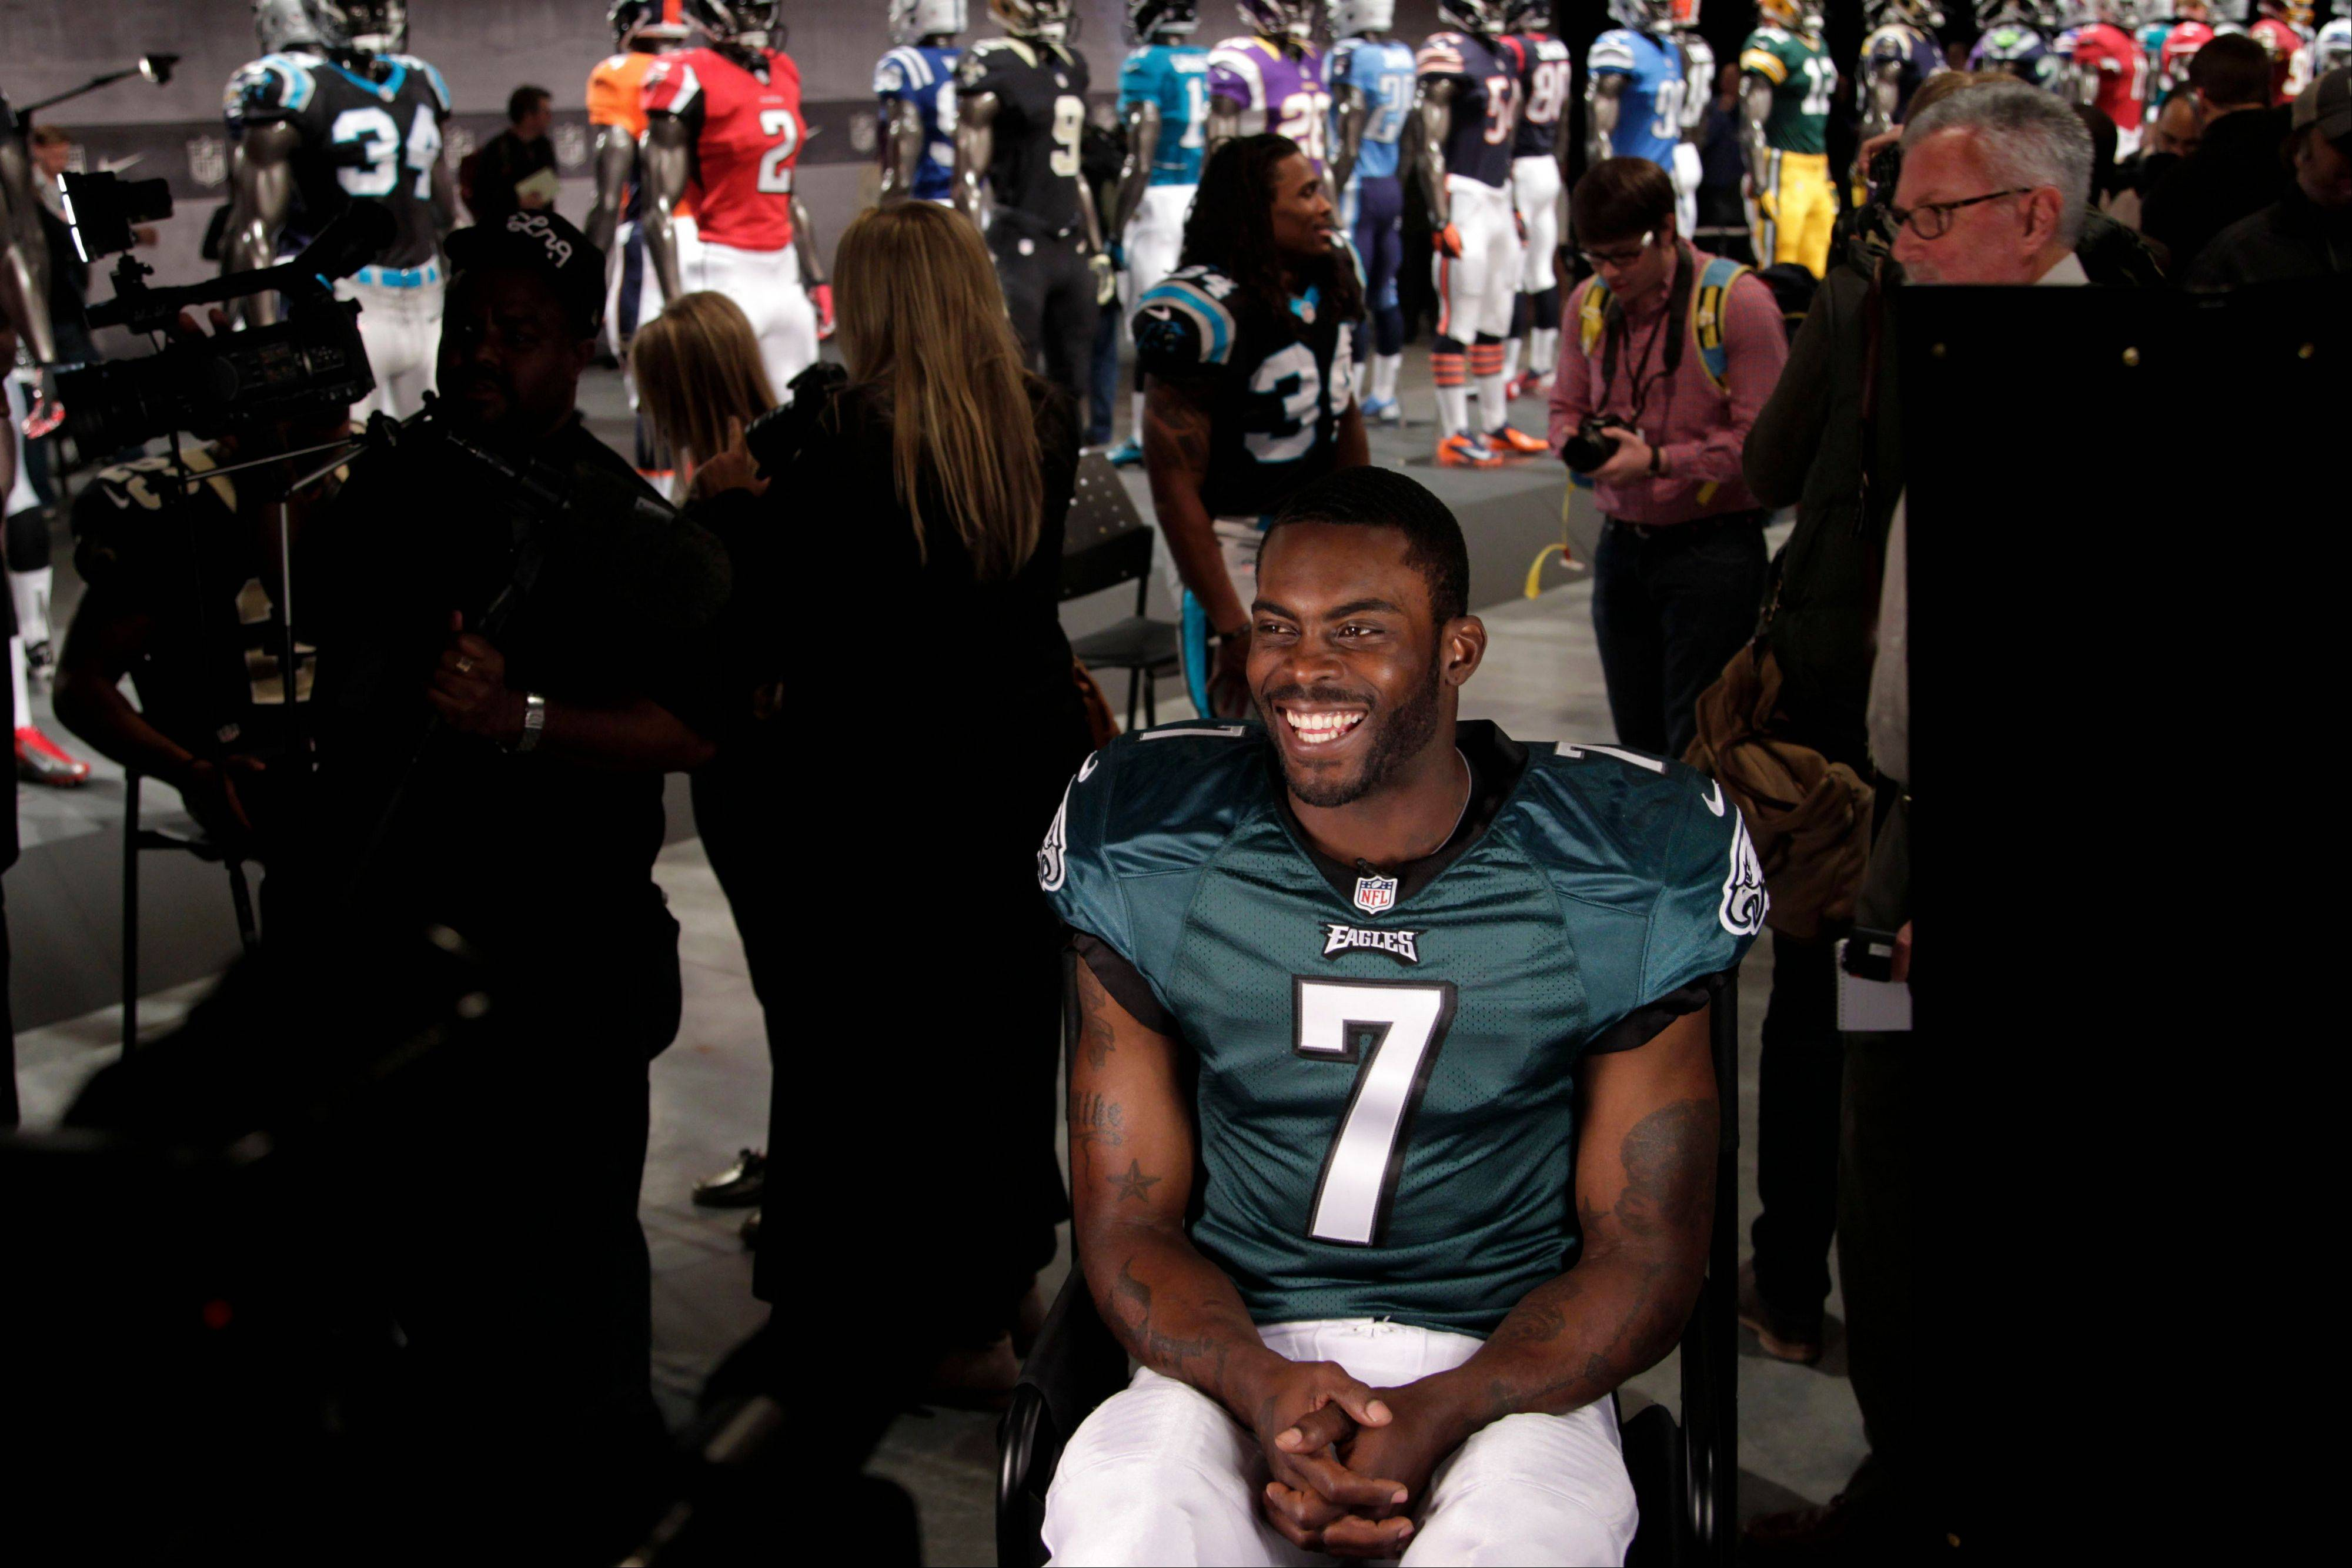 Philadelphia Eagles' Michael Vick smiles before the start of an interview while new uniforms are displayed behind him at a presentation in New York, Tuesday, April 3, 2012. The NFL and Nike showed off the new gear in grand style with a gridiron-themed fashion show at a Brooklyn film studio.